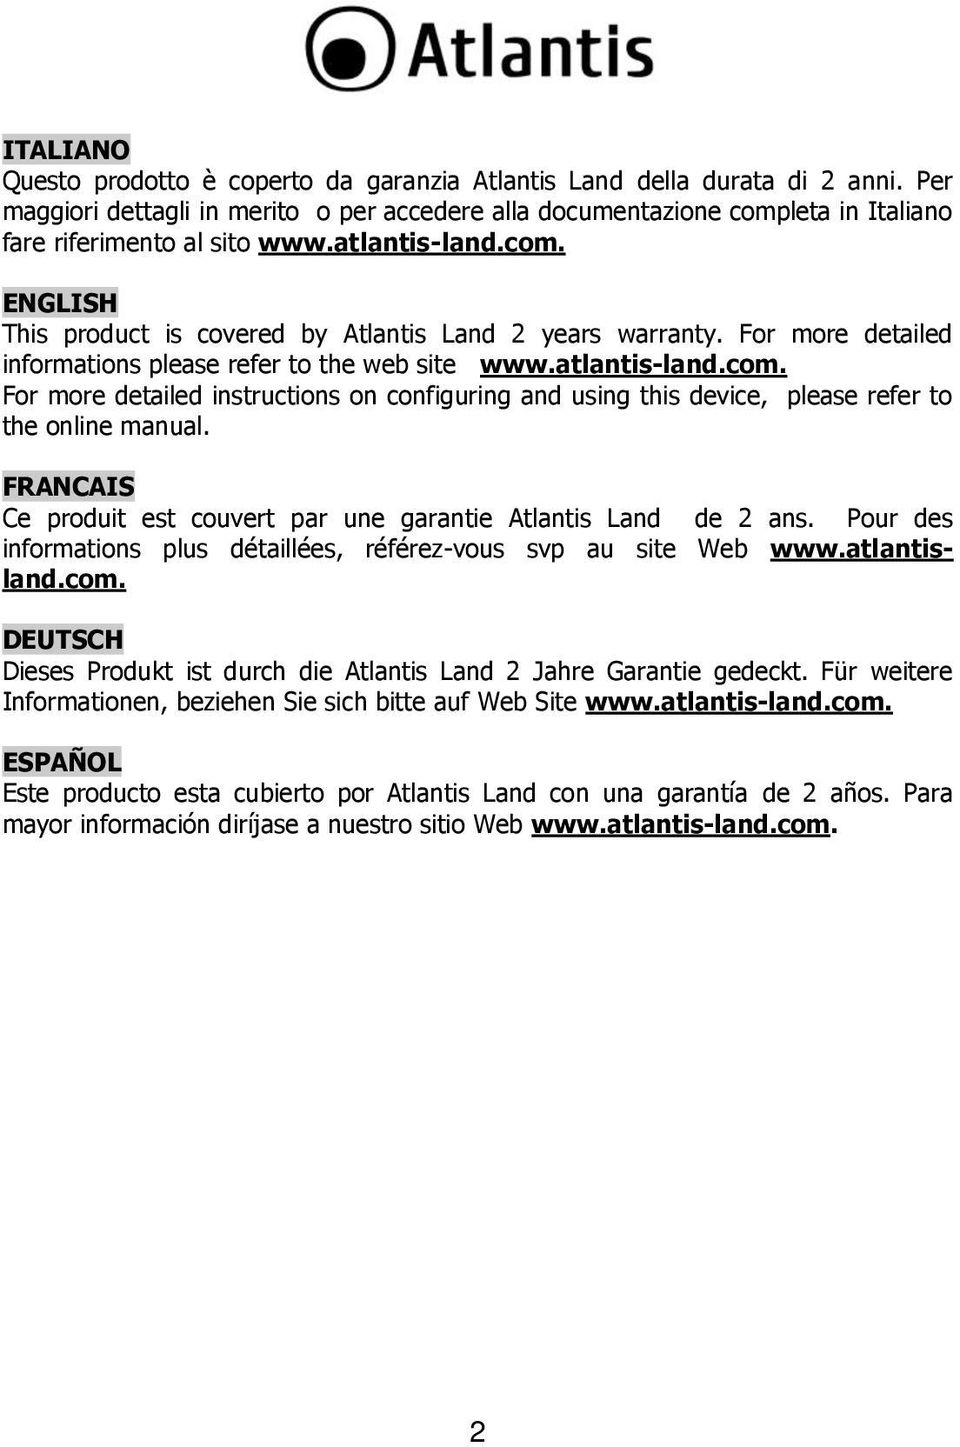 For more detailed informations please refer to the web site www.atlantis-land.com. For more detailed instructions on configuring and using this device, please refer to the online manual.